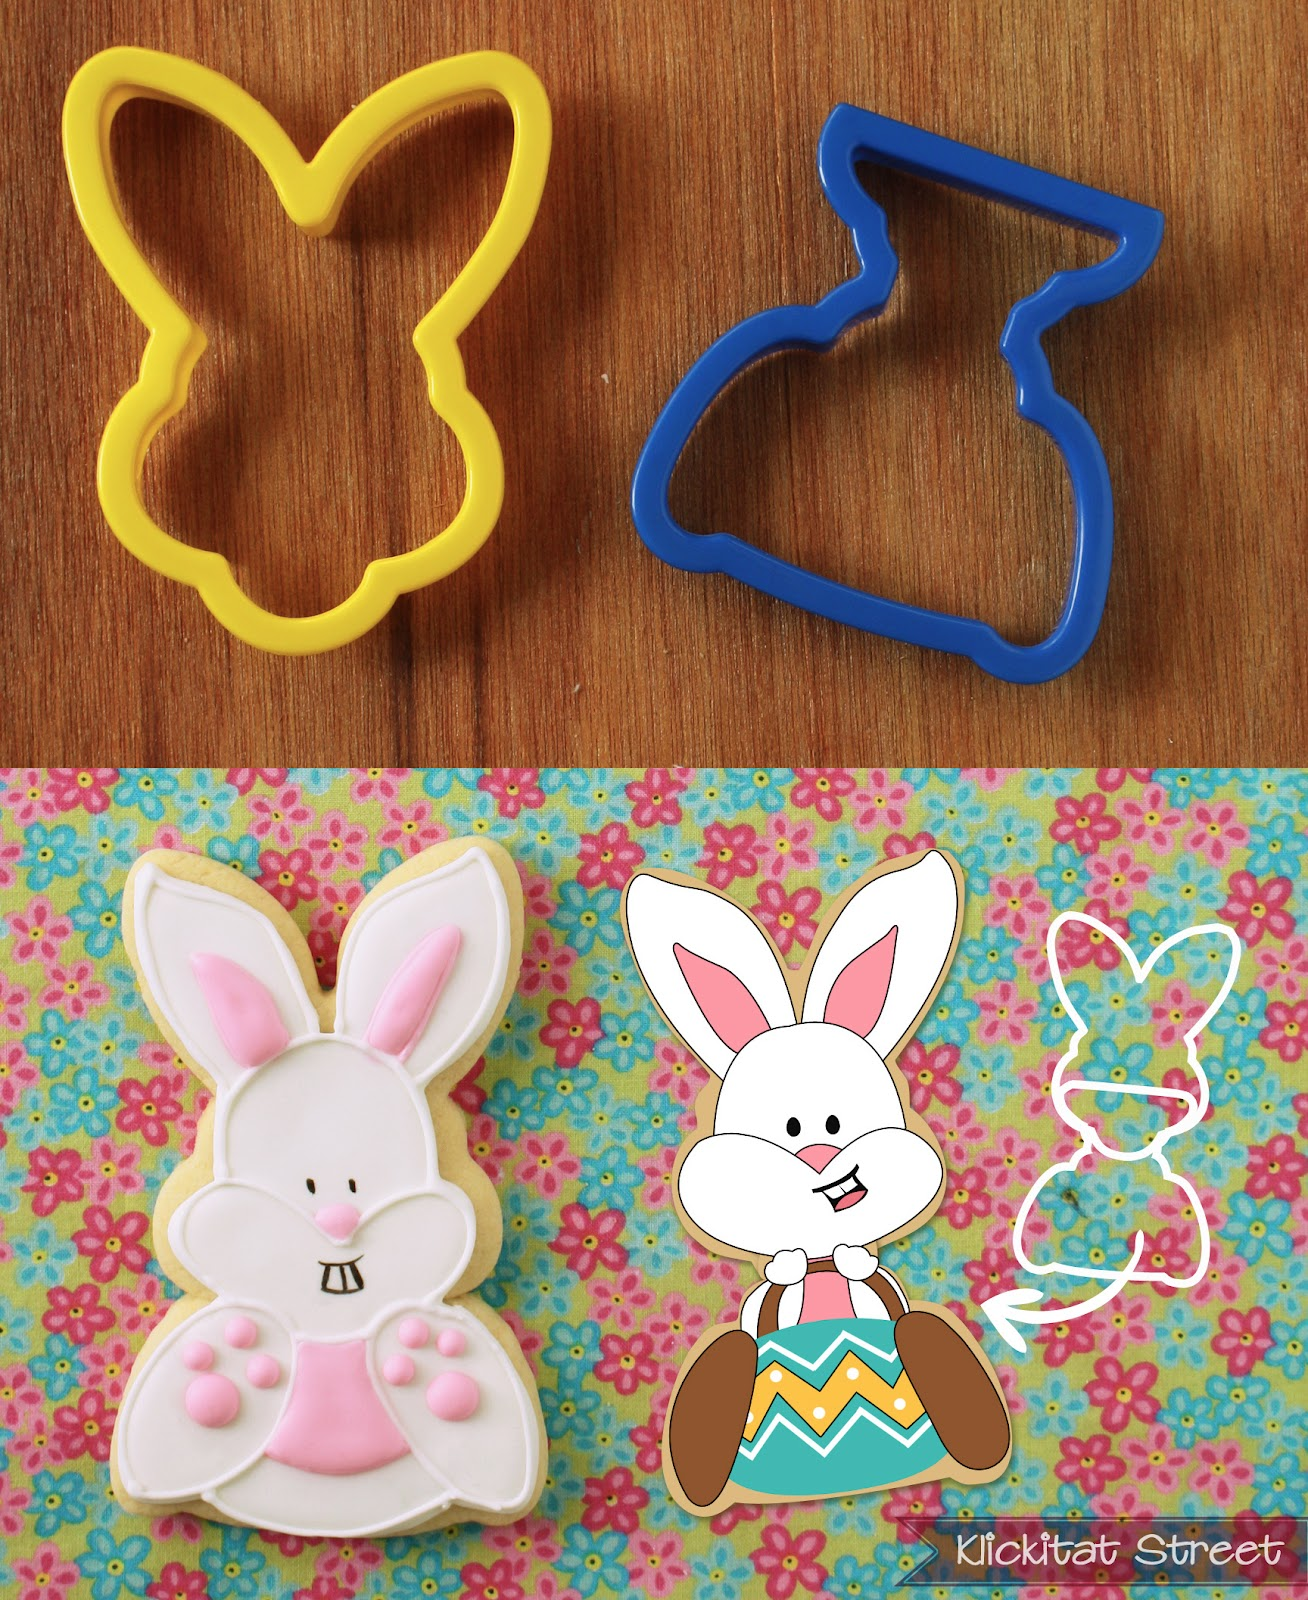 Easter bunny rabbit cookies made by combining bunnny face cookie cutter with a trophy